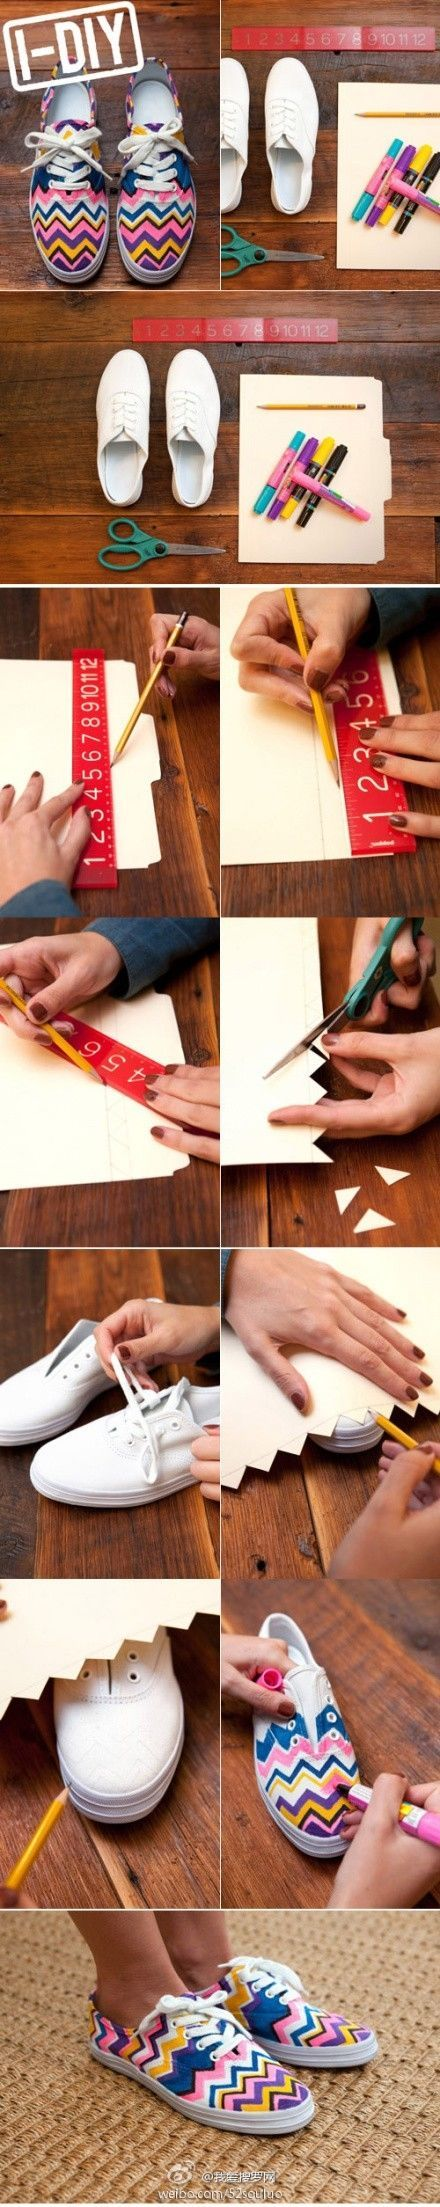 DIY Chevron Shoes Pictures, Photos, and Images for Facebook, Tumblr, Pinterest, and Twitter